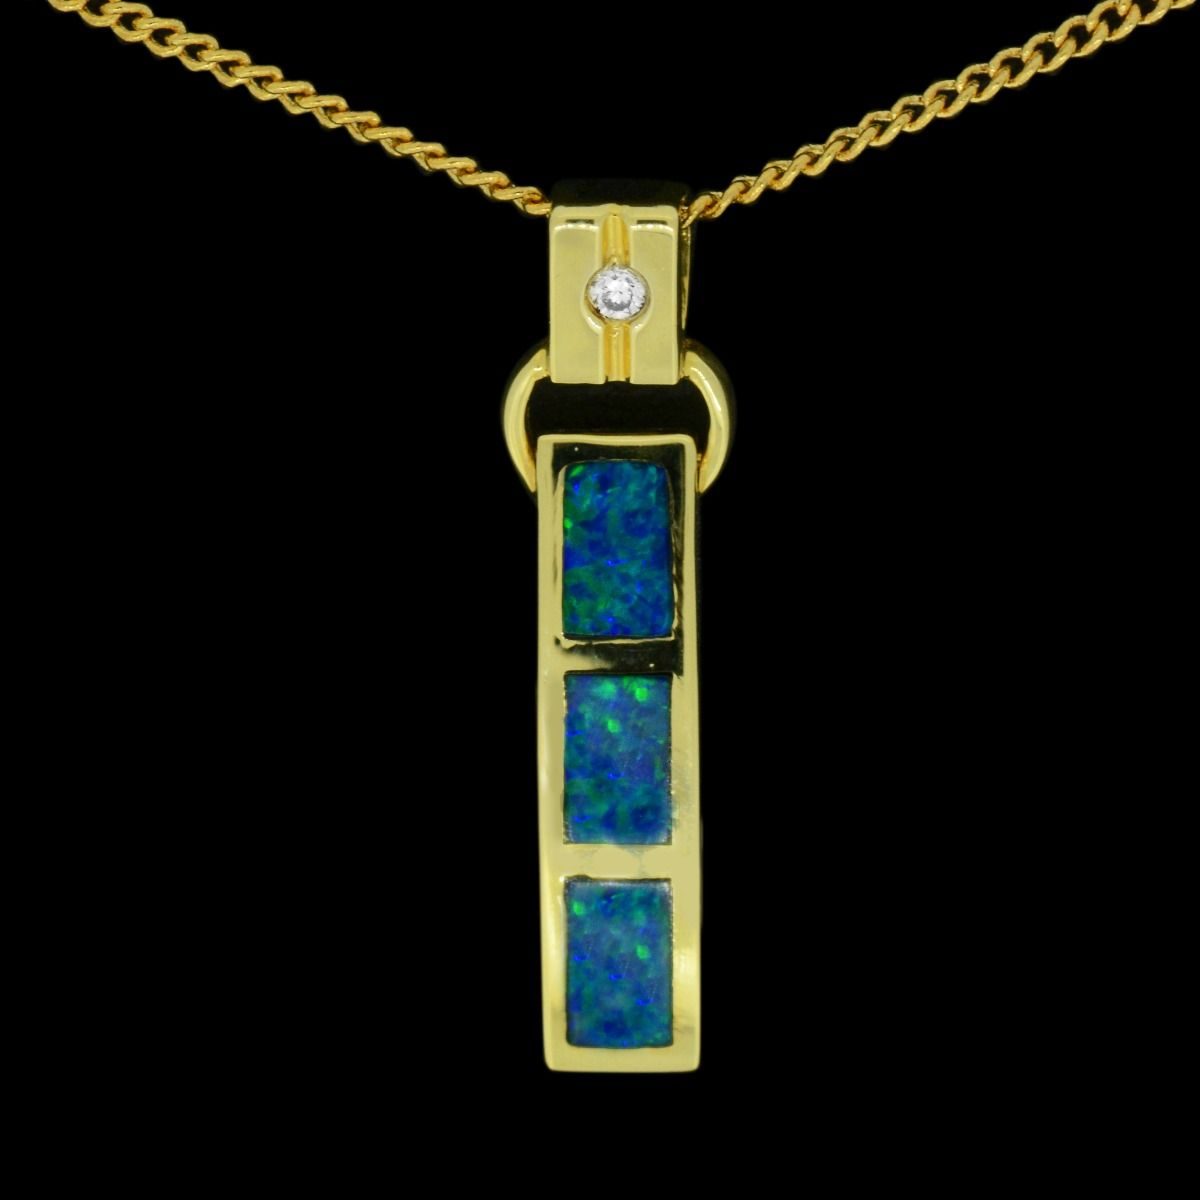 14ct Yellow Gold Inlaid Opal Pendant